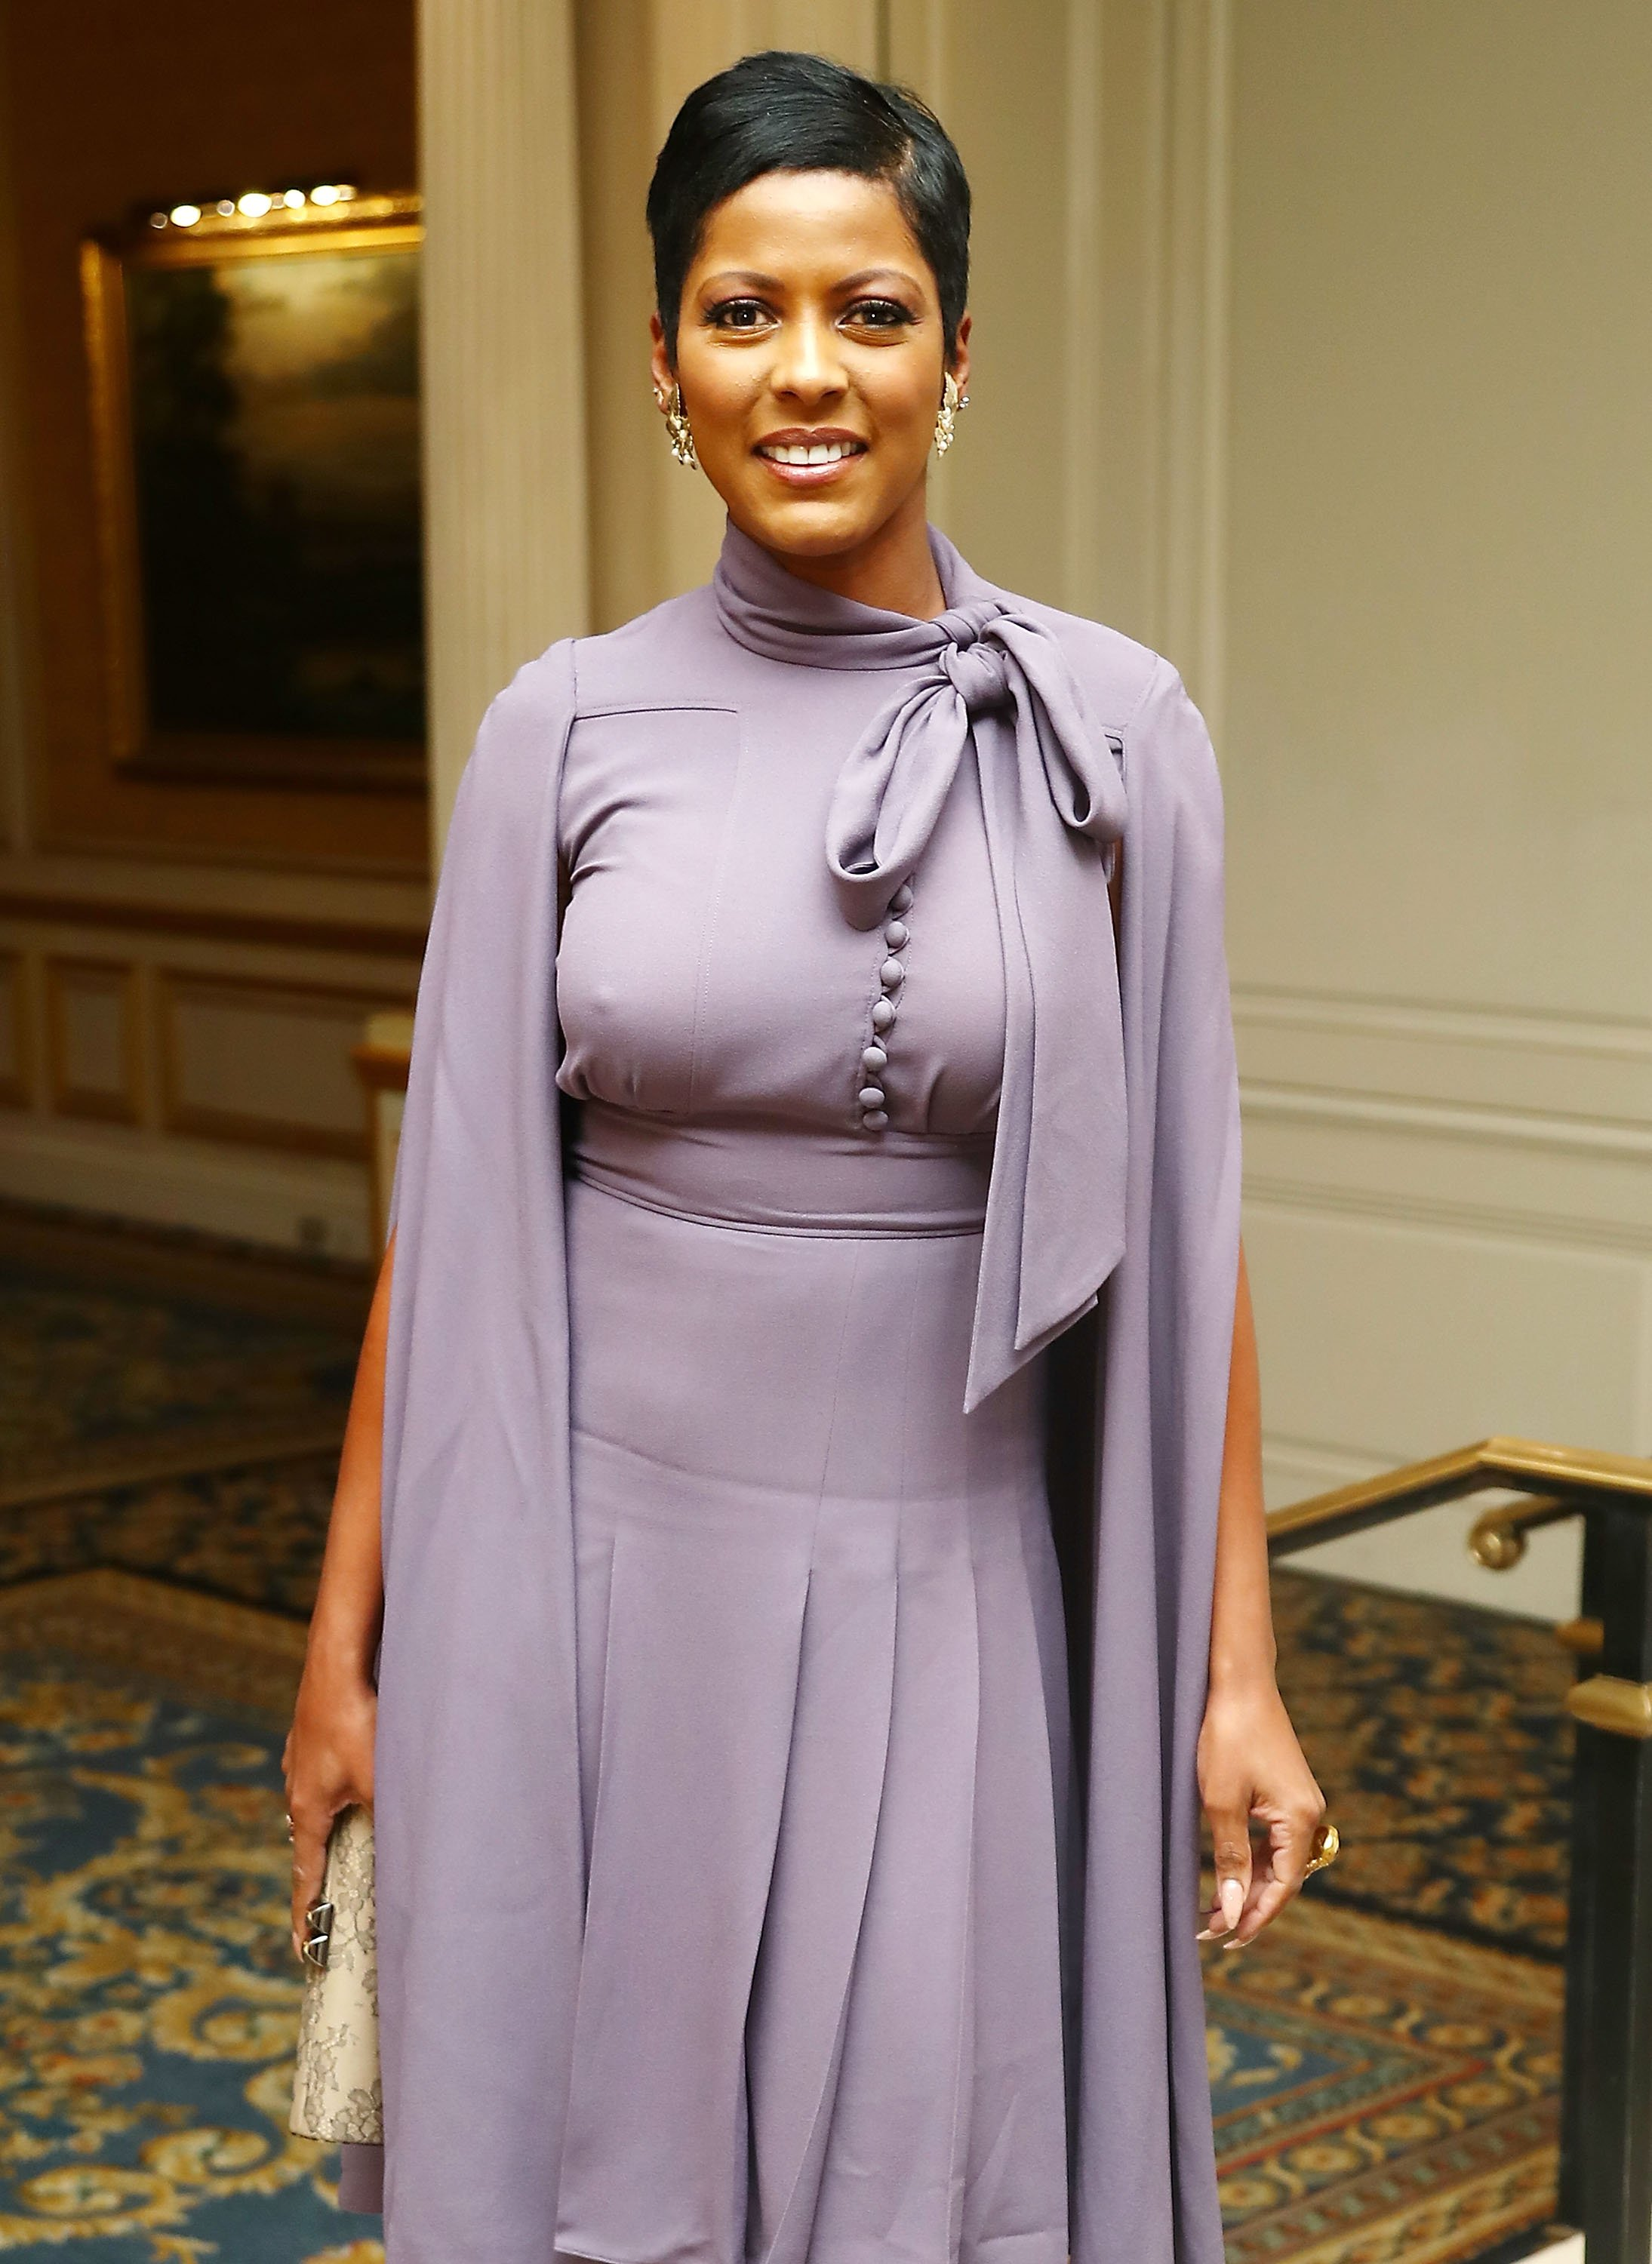 Tamron Hall attends the 11th annual Moving Families Forward gala at JW Marriot Essex House on October 23, 2017 in New York City | Photo: GettyImages